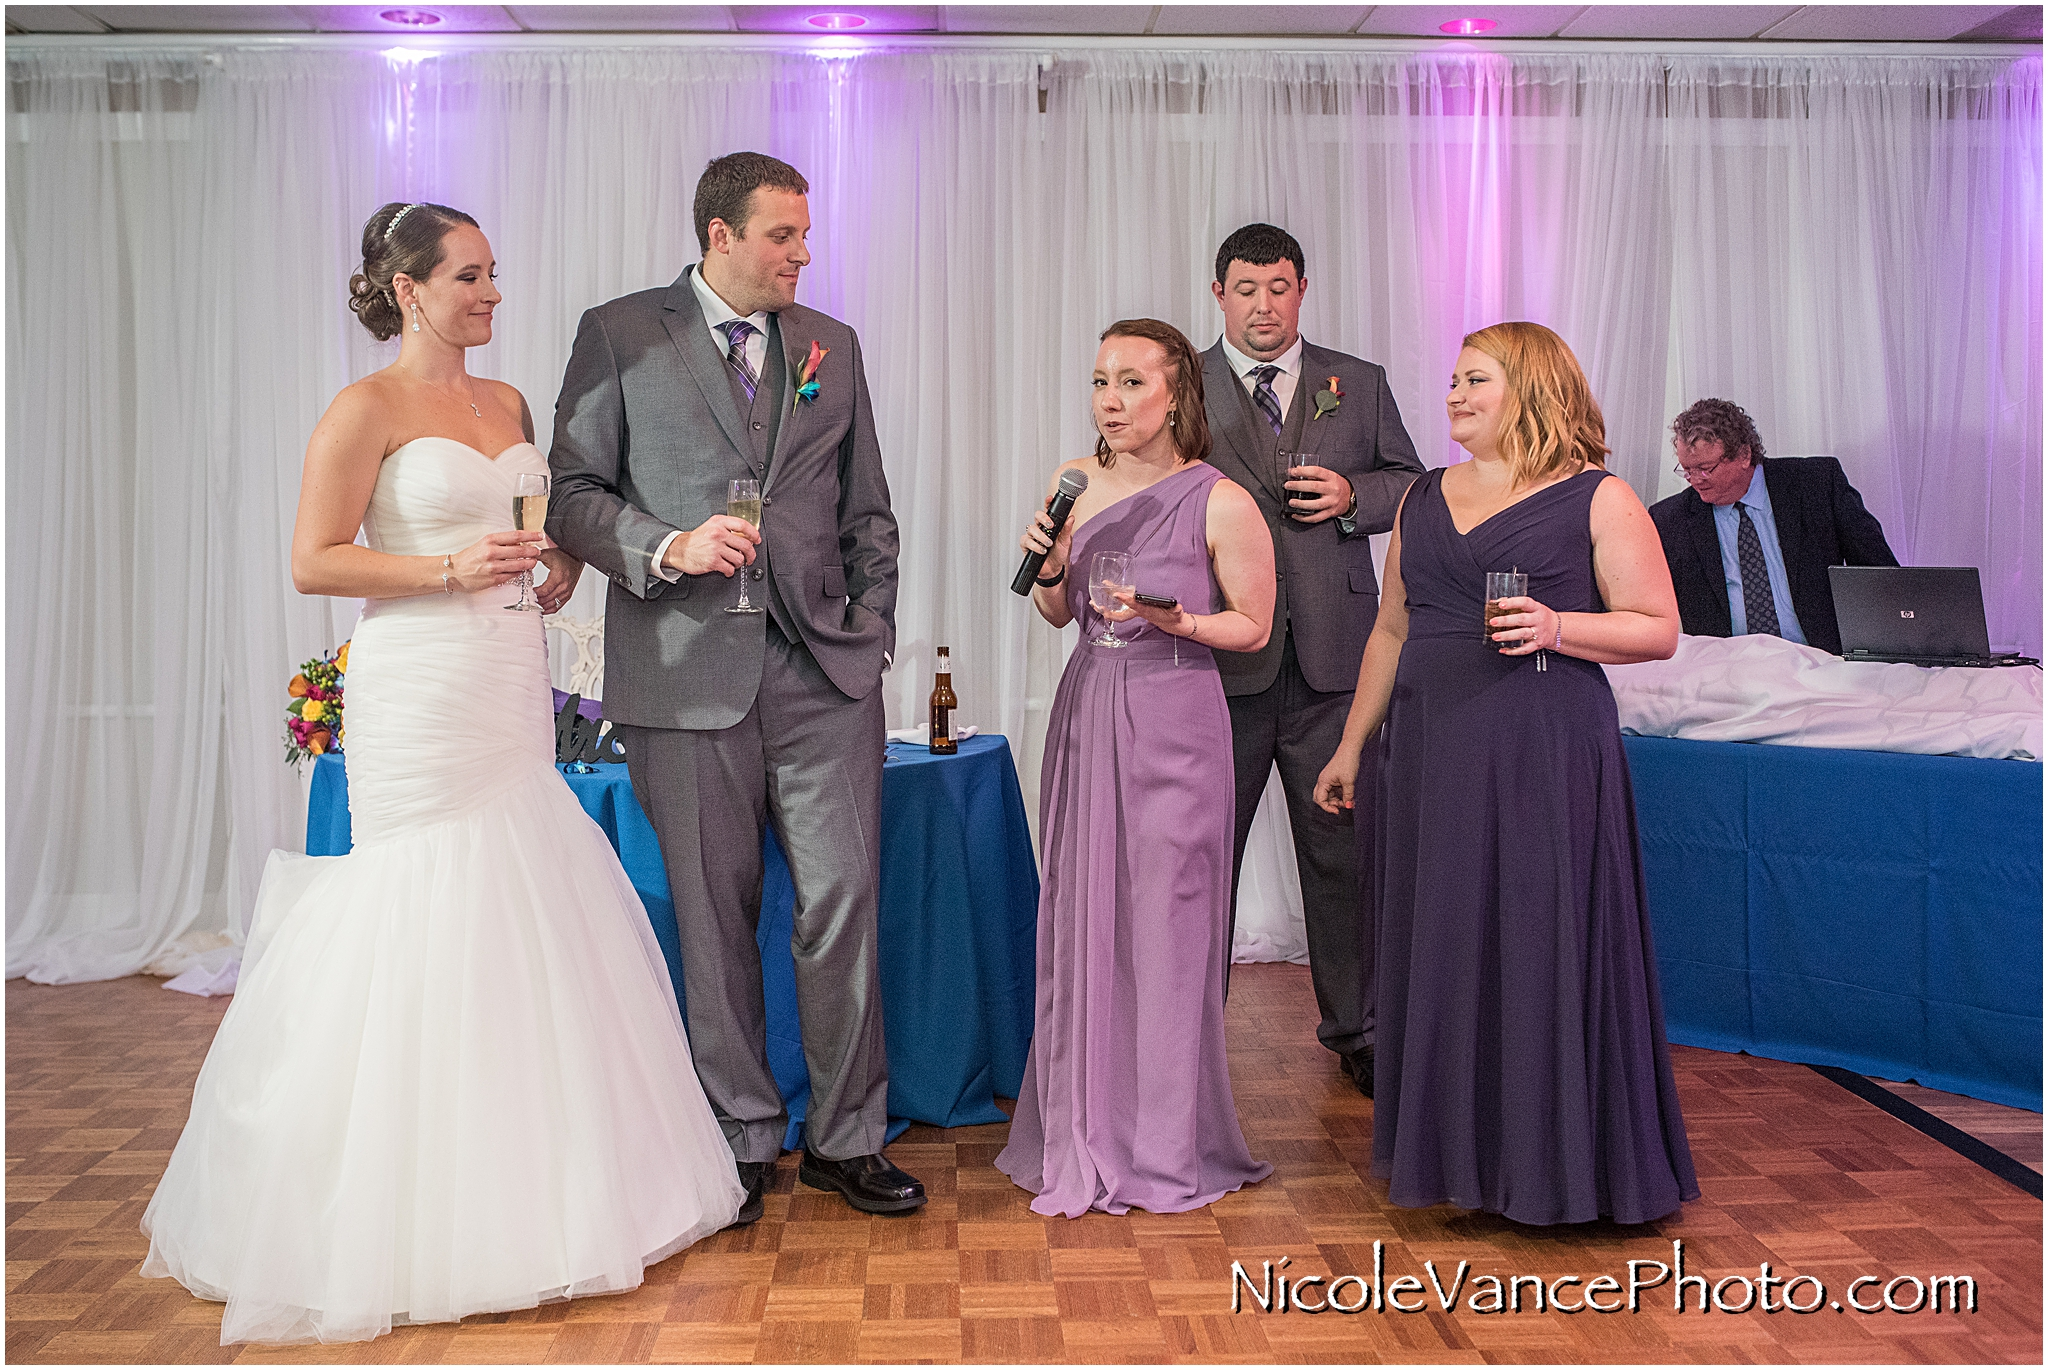 The maid of honor makes a toast to the bride and groom at The Brownstone in Richmond, VA.